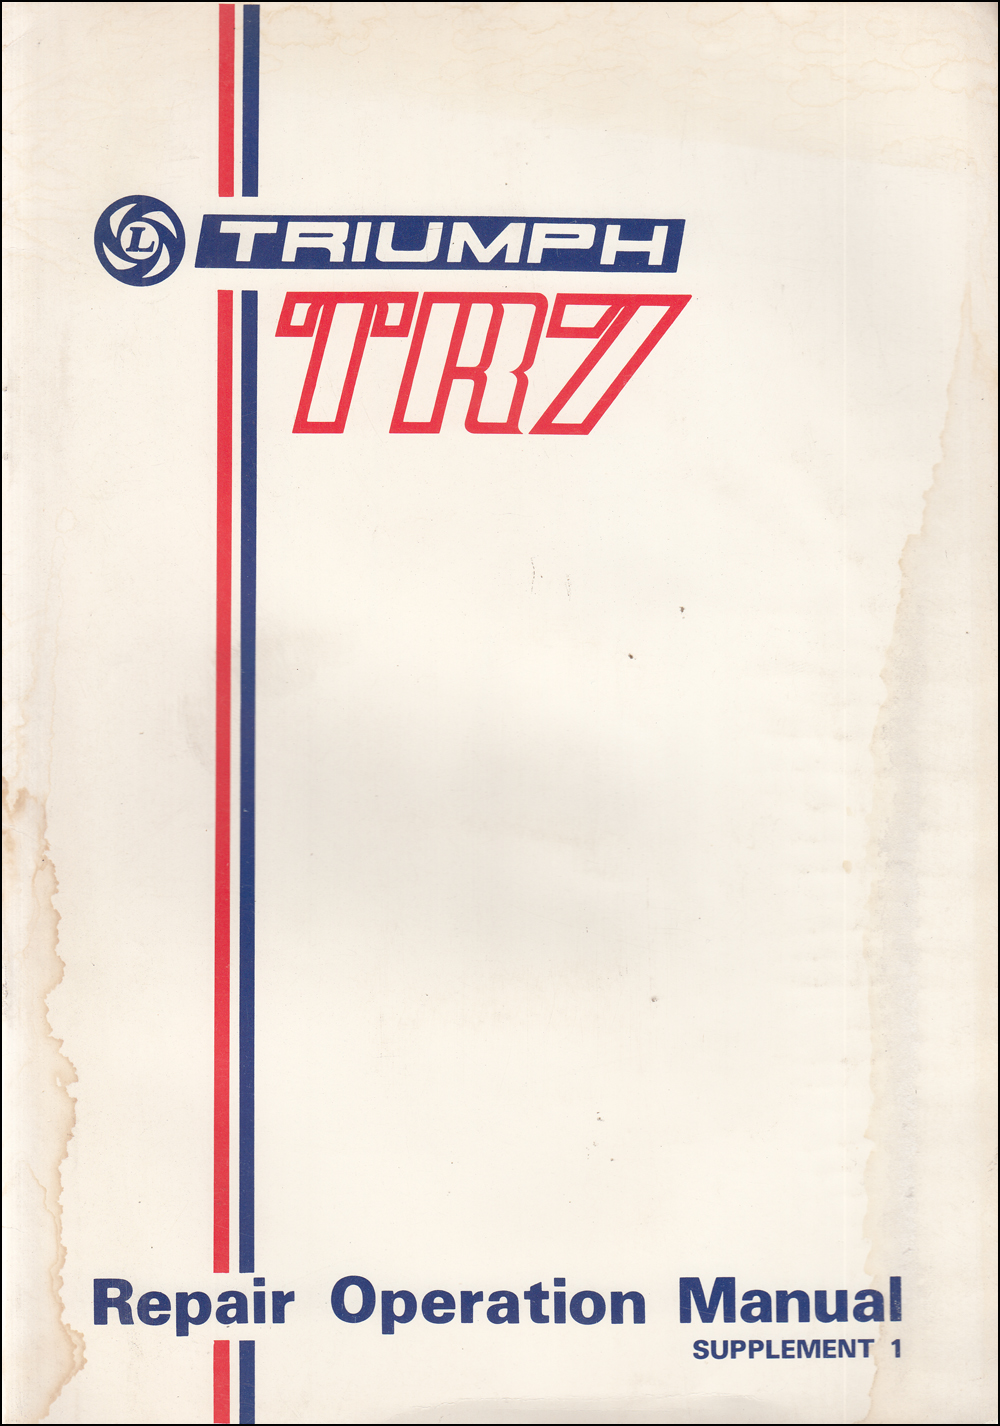 1976 Triumph TR7 5-Speed Gearbox Repair Shop Manual Supplement Original